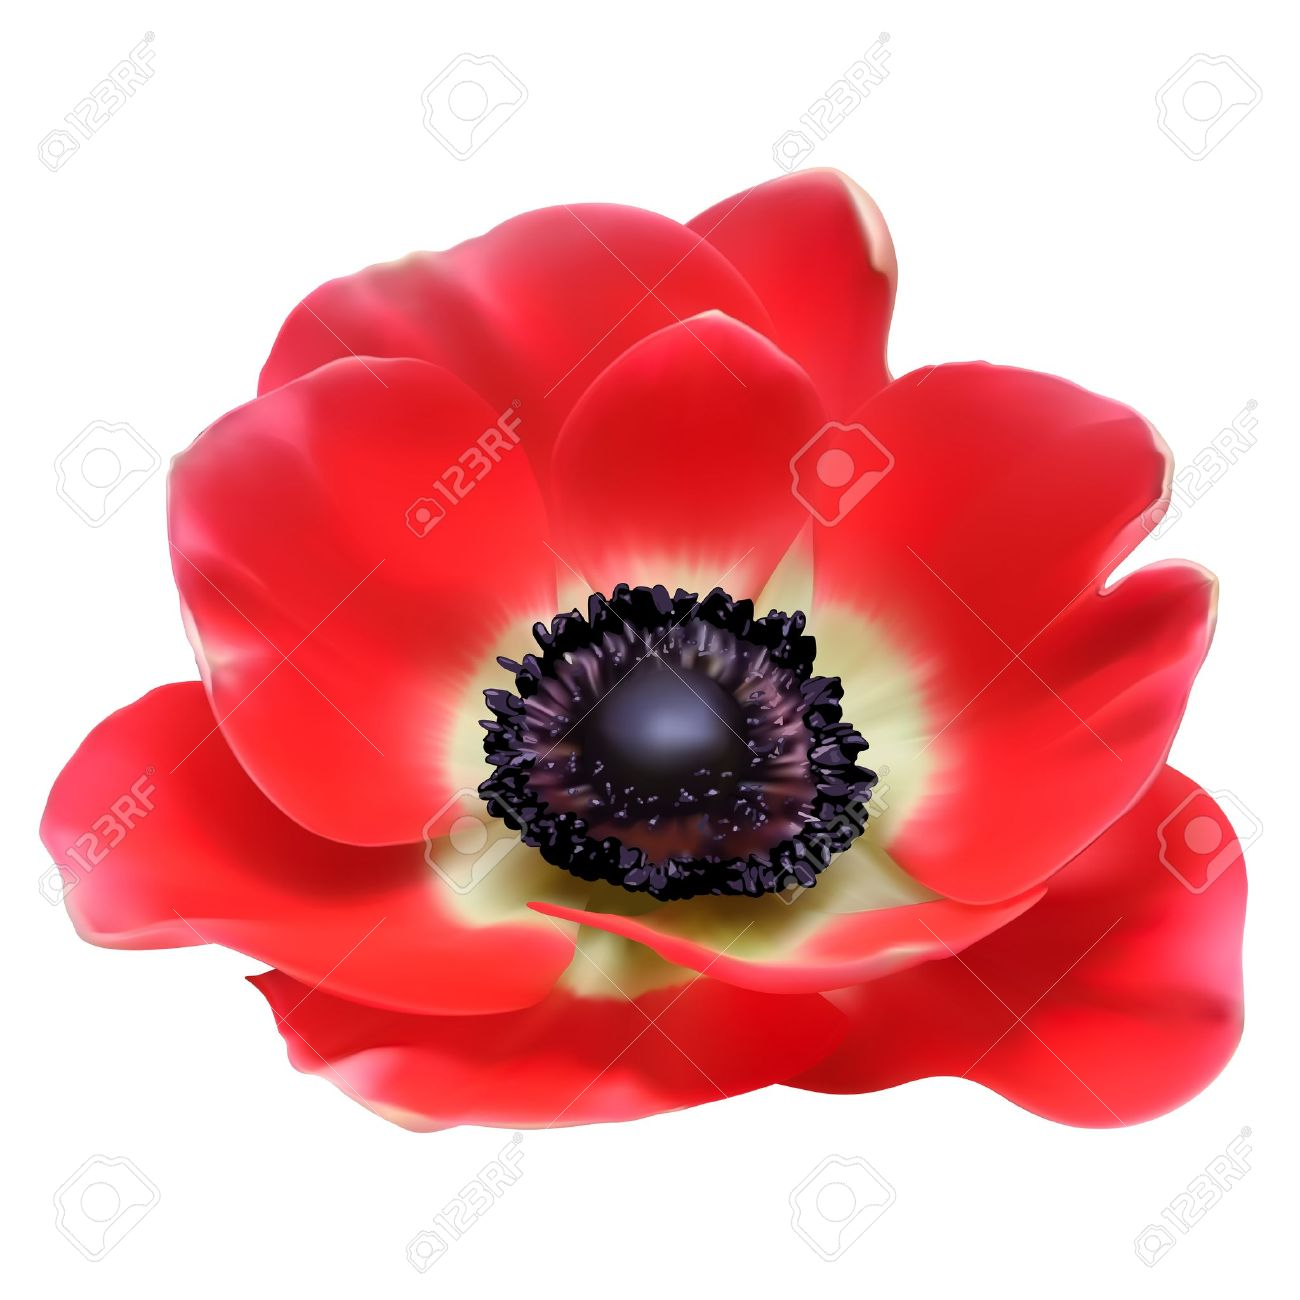 Poppy clipart #12, Download drawings